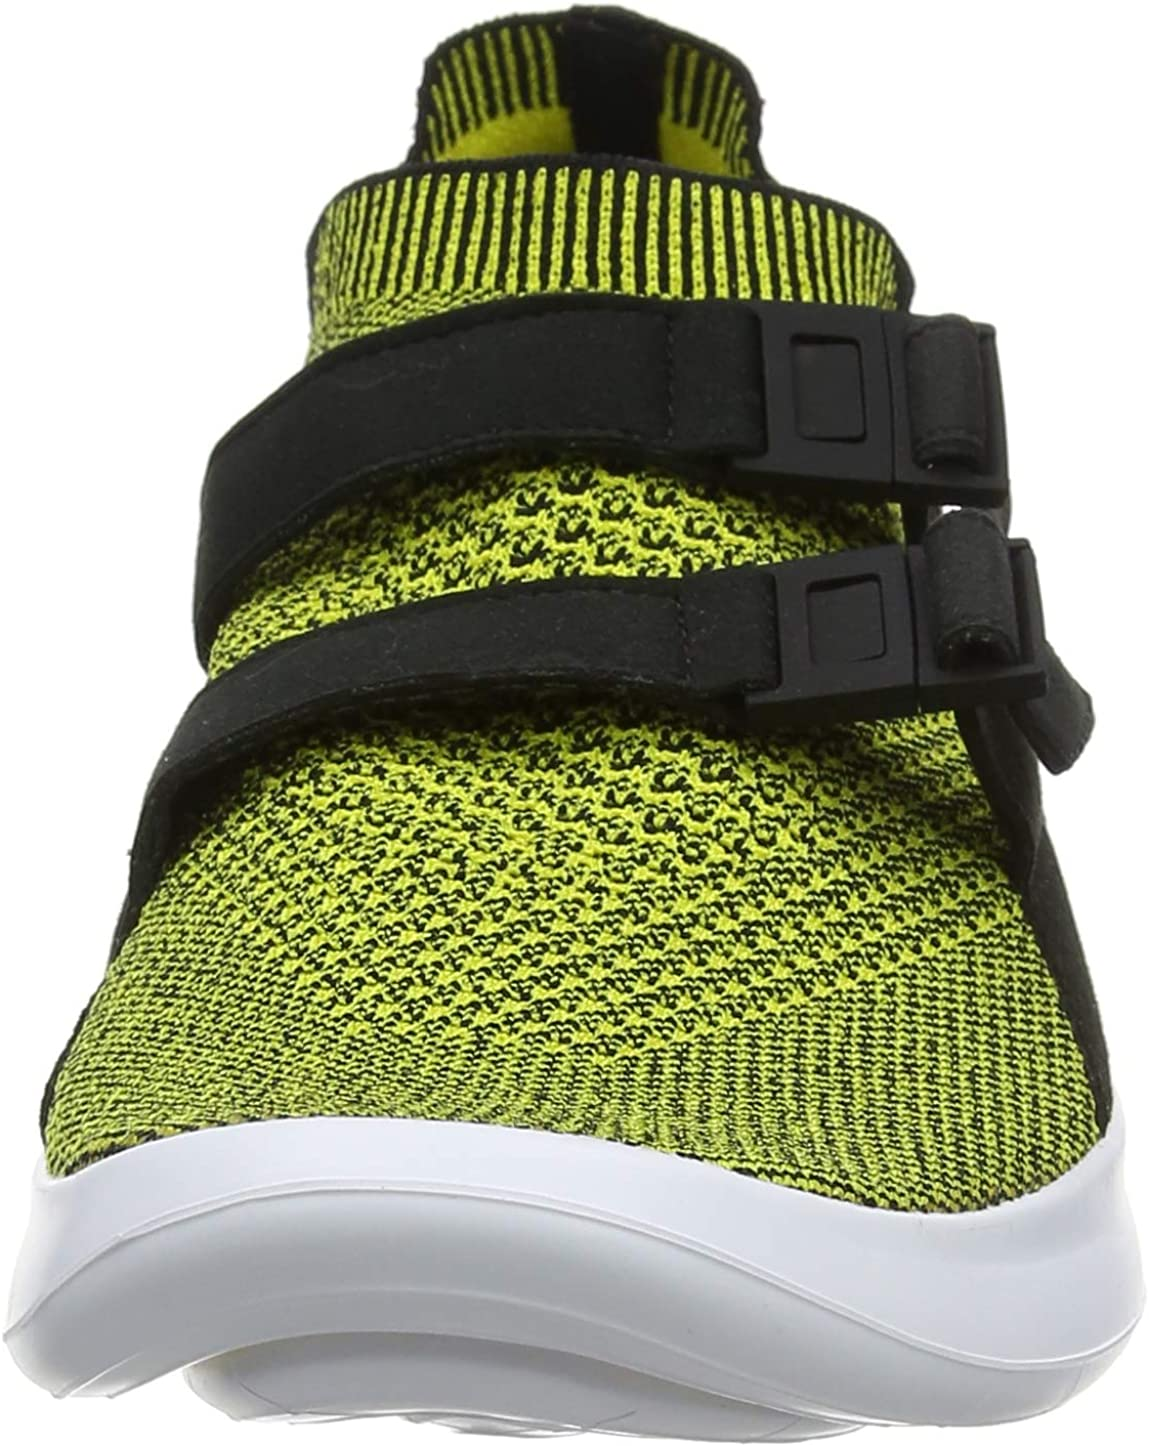 Men's Nike Air Sock Racer Ultra Flyknit Trainers Yellow Strike Yellow Strike